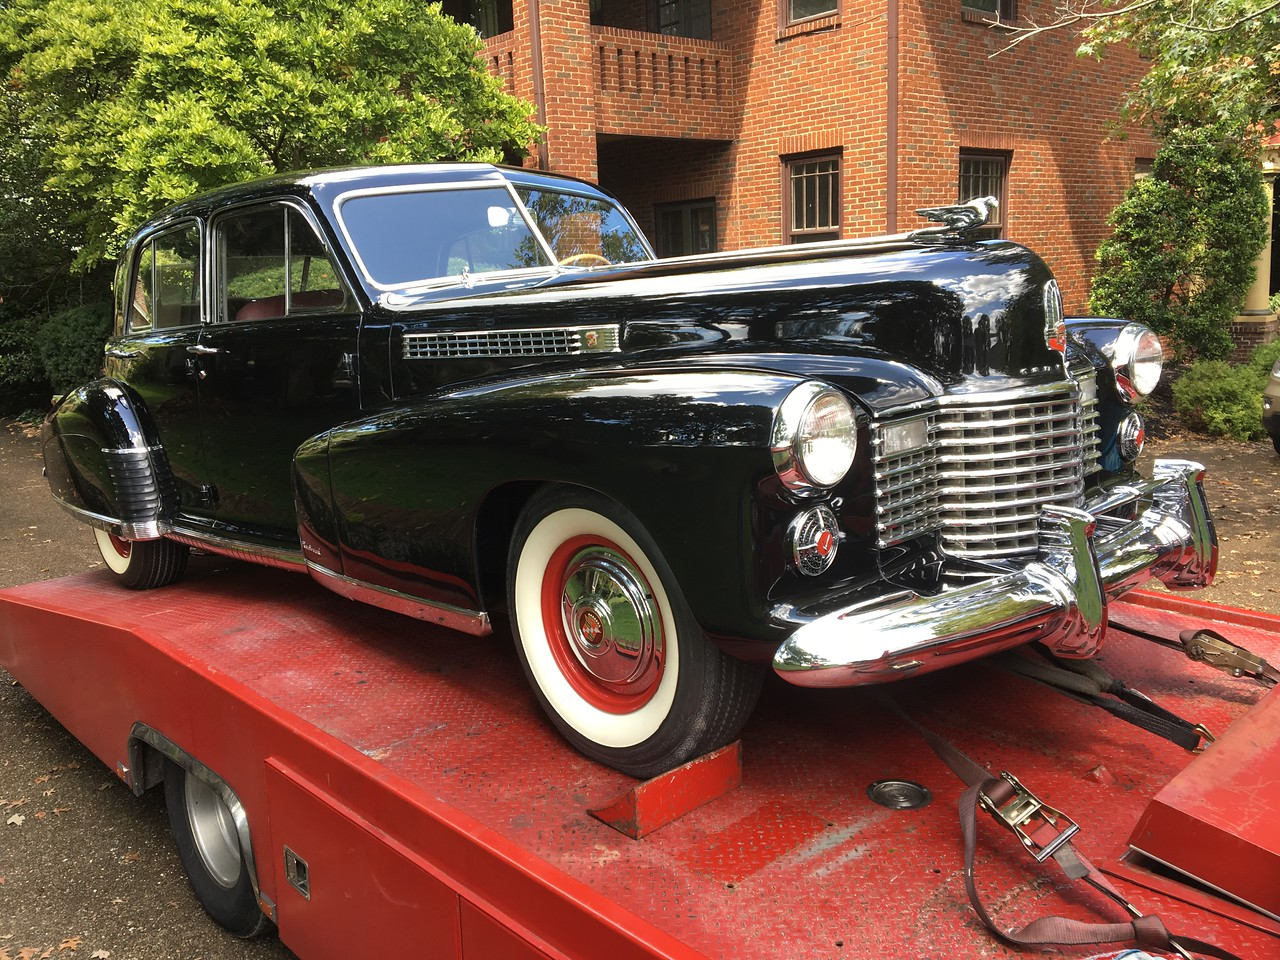 1941 Cadillac (Springfield, Tennessee to Nashville, Tennessee)